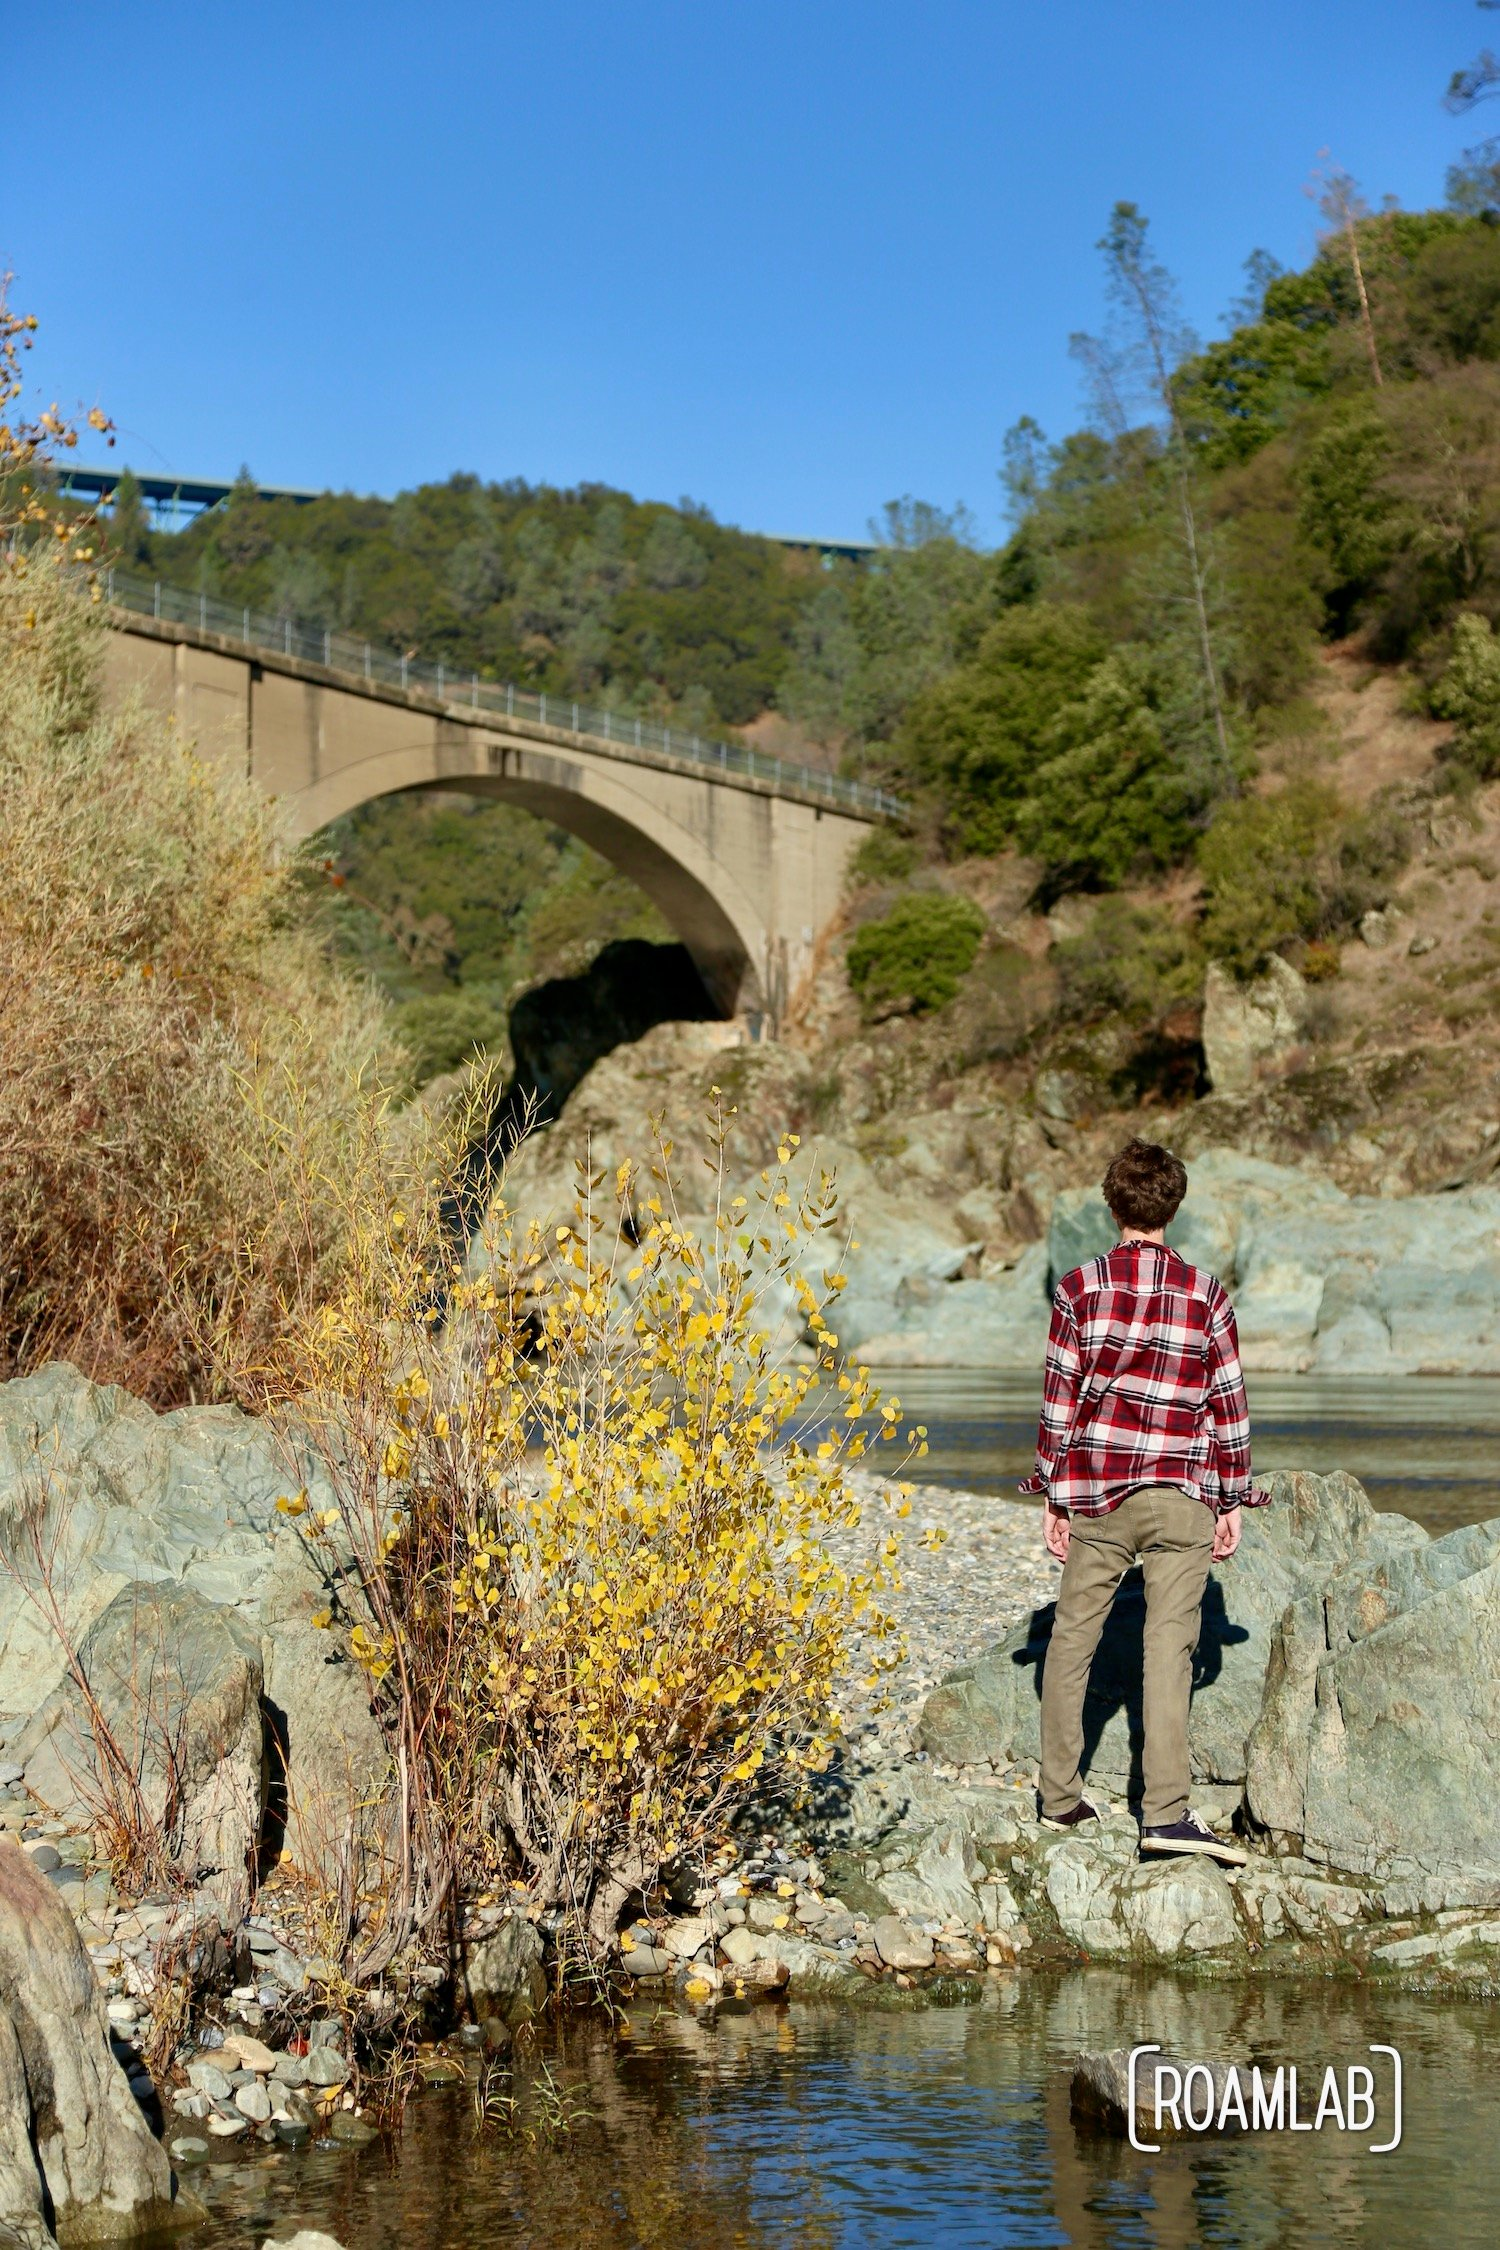 No Hands Bridge off highway 49 is a hiking destination crossing the North Fork of the American River in the ⁨California's Auburn State Recreation Area.